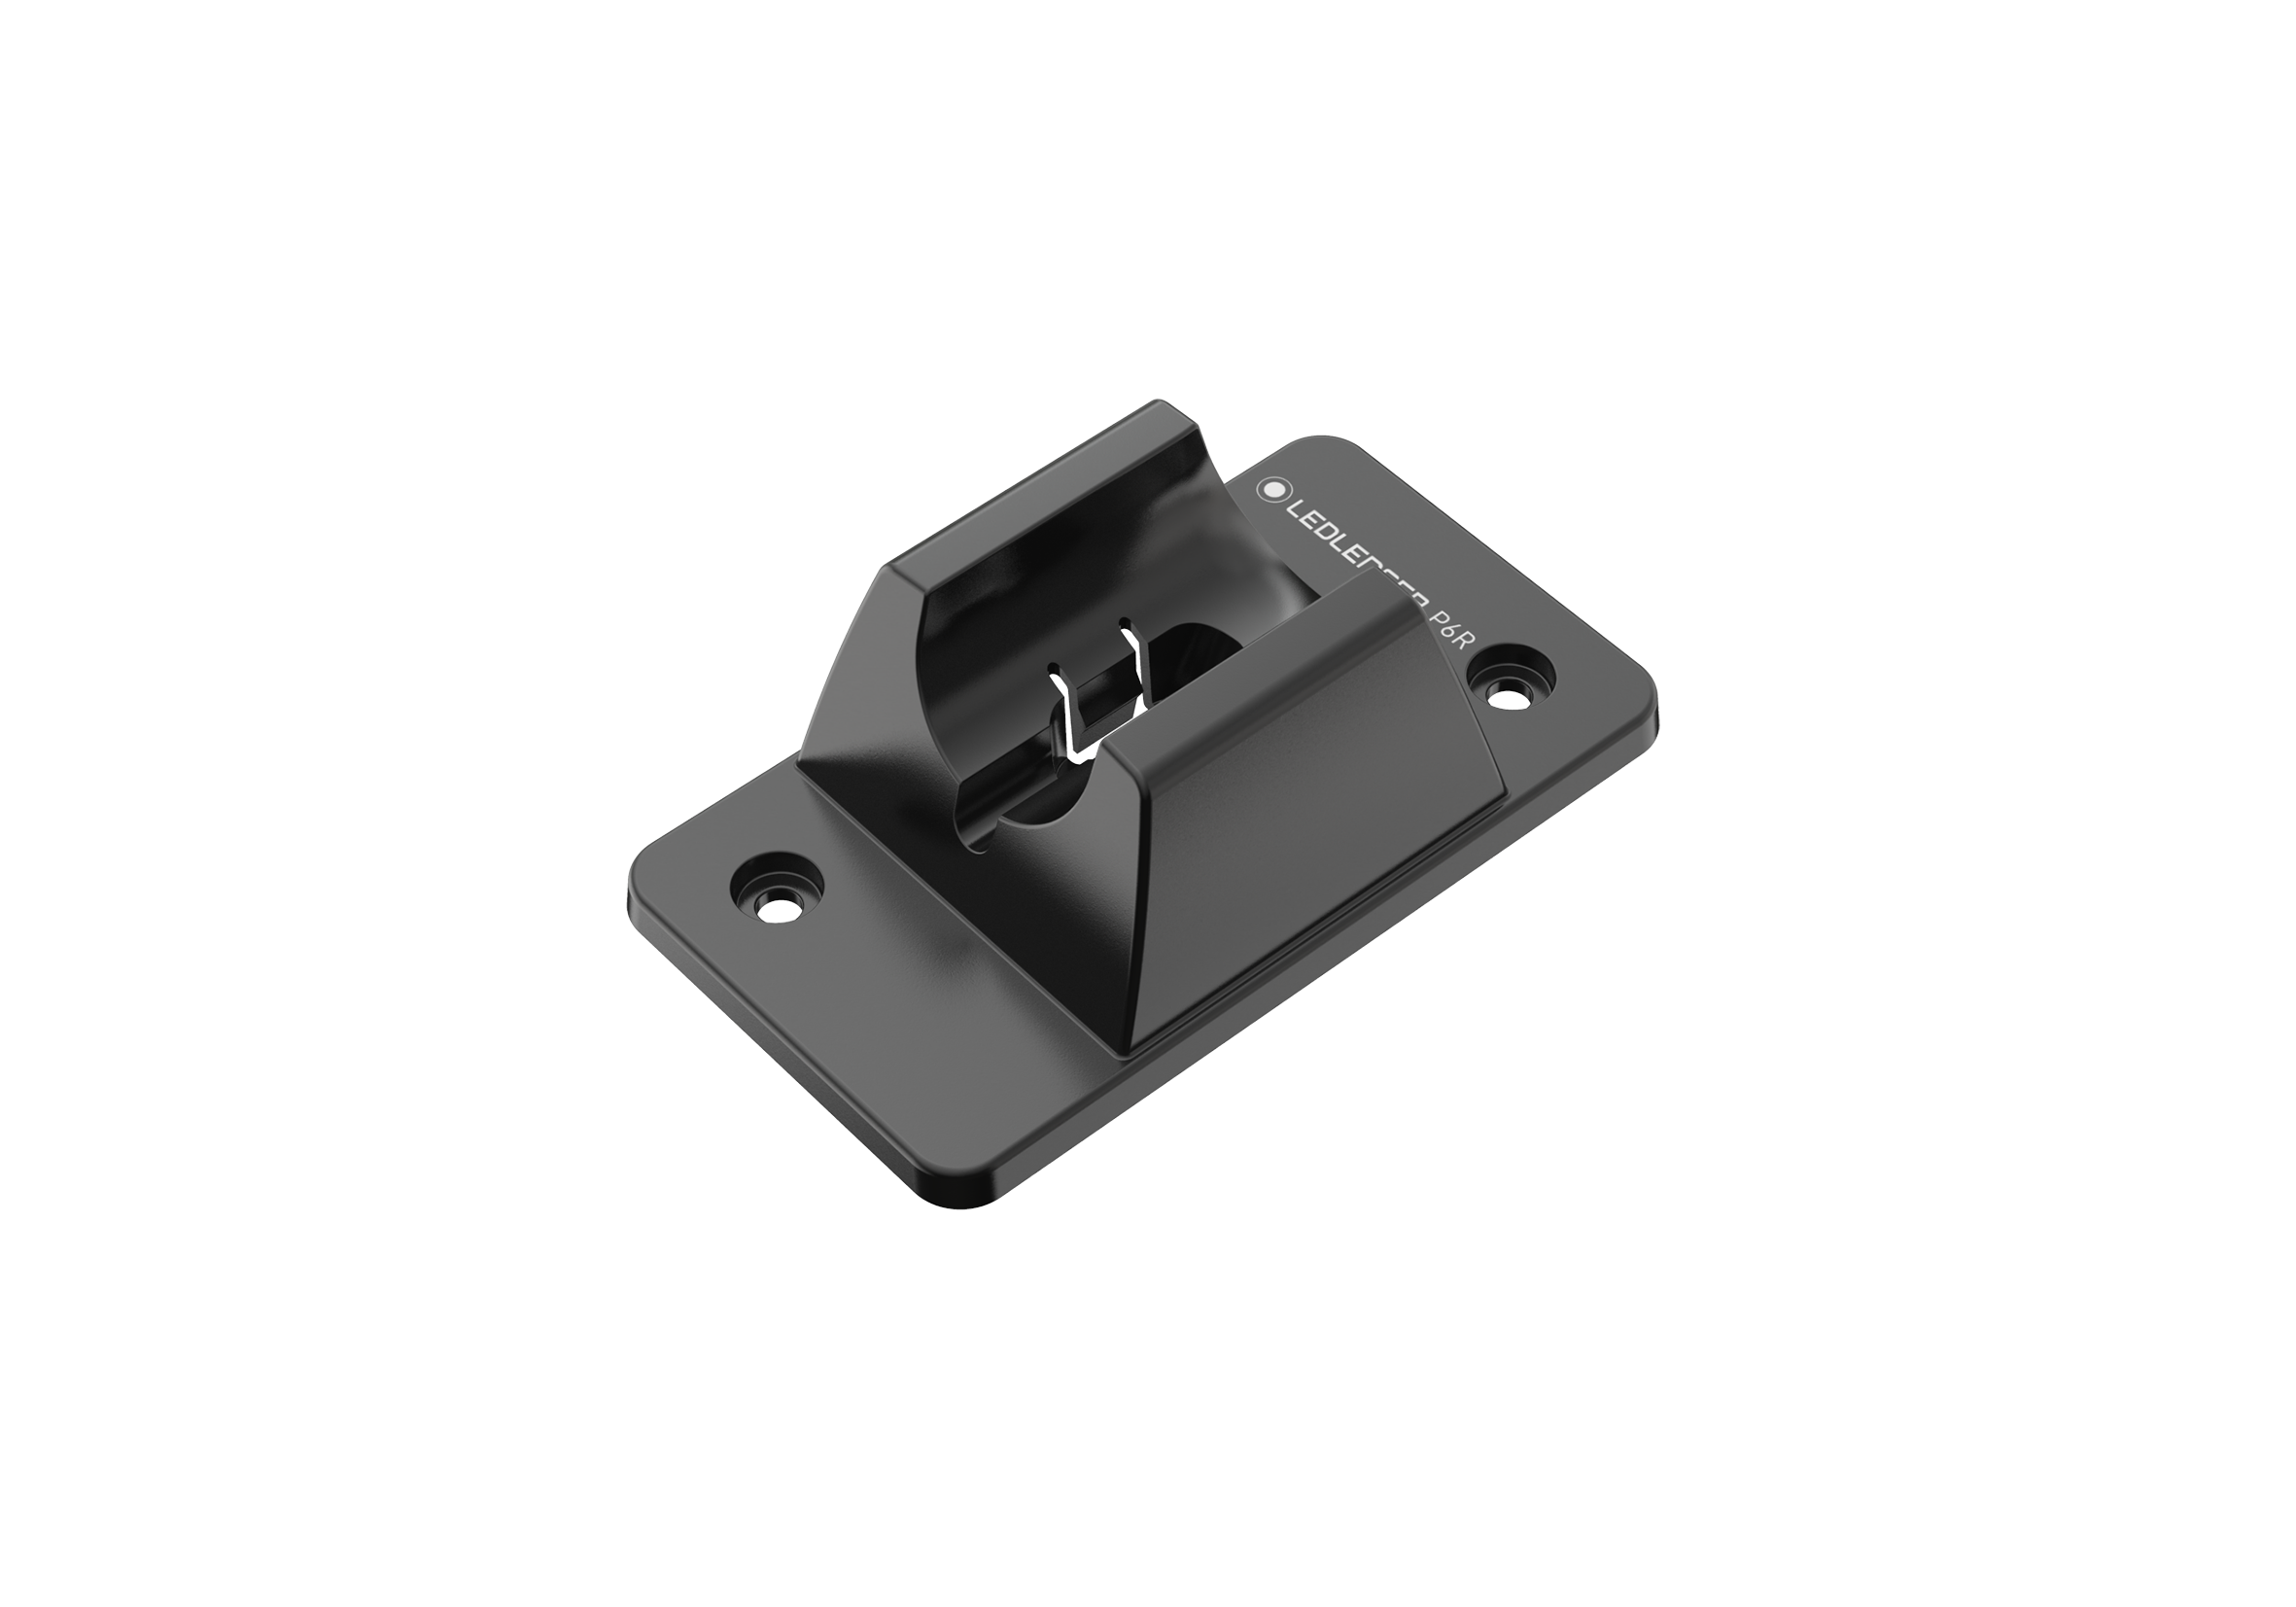 Wall Mount Type A